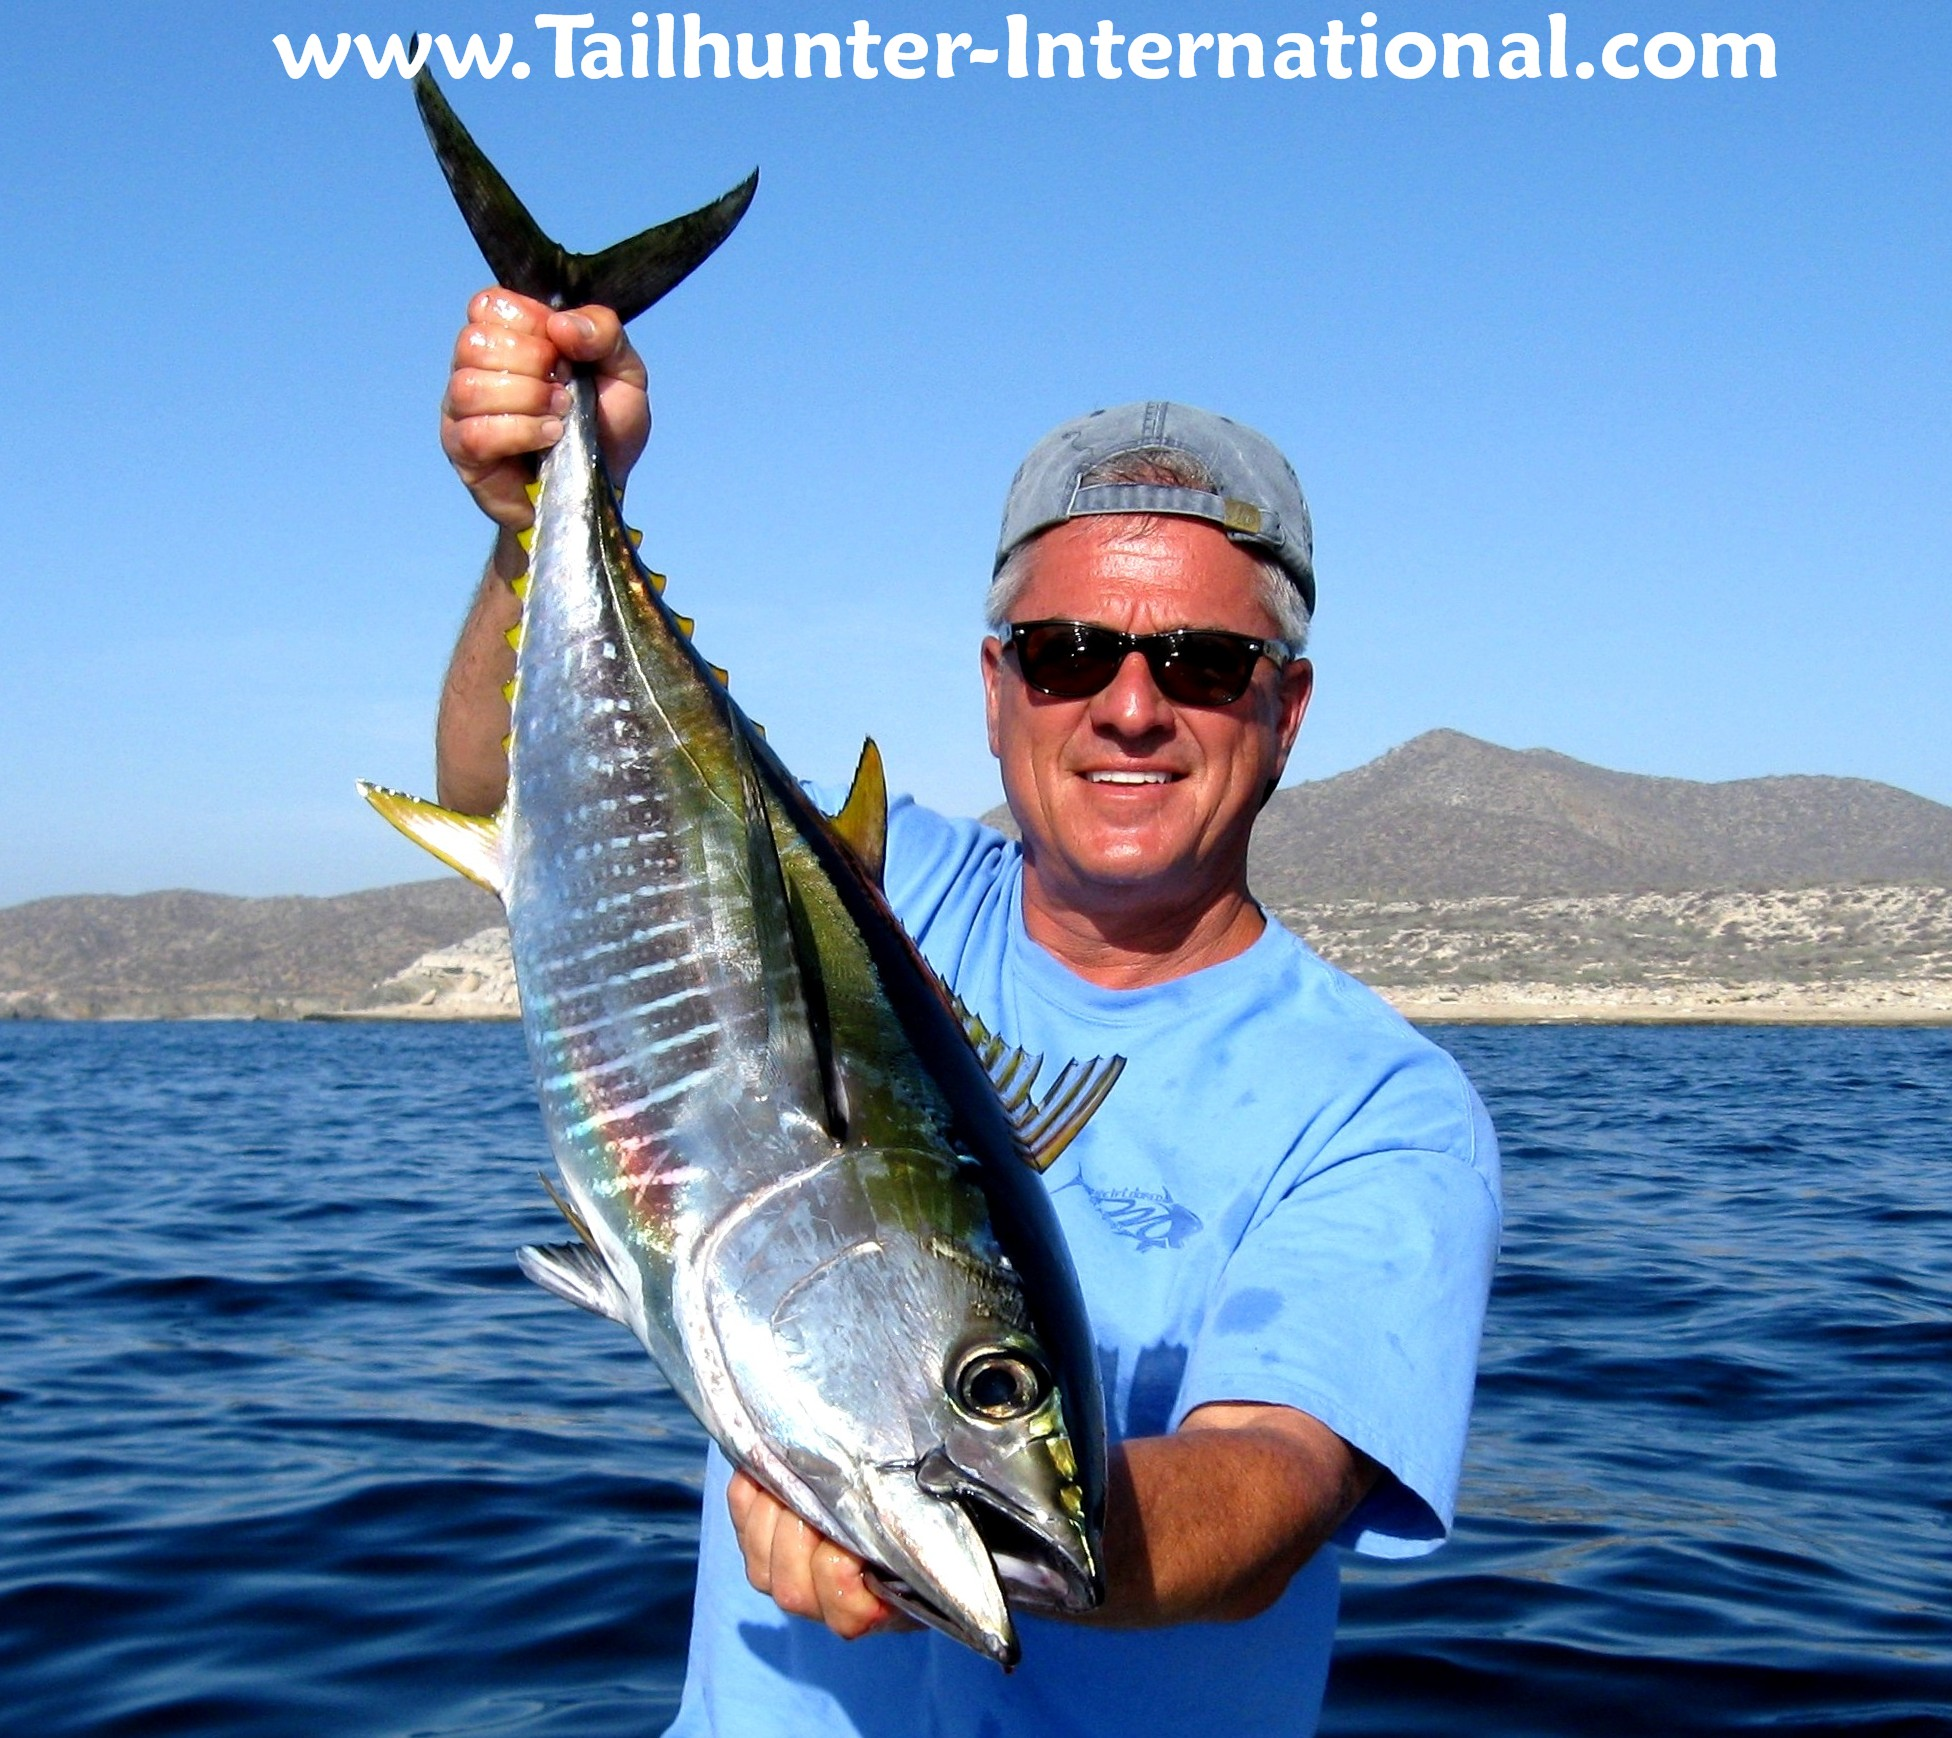 La paz las arenas fishing report from tailhunter for San diego tuna fishing